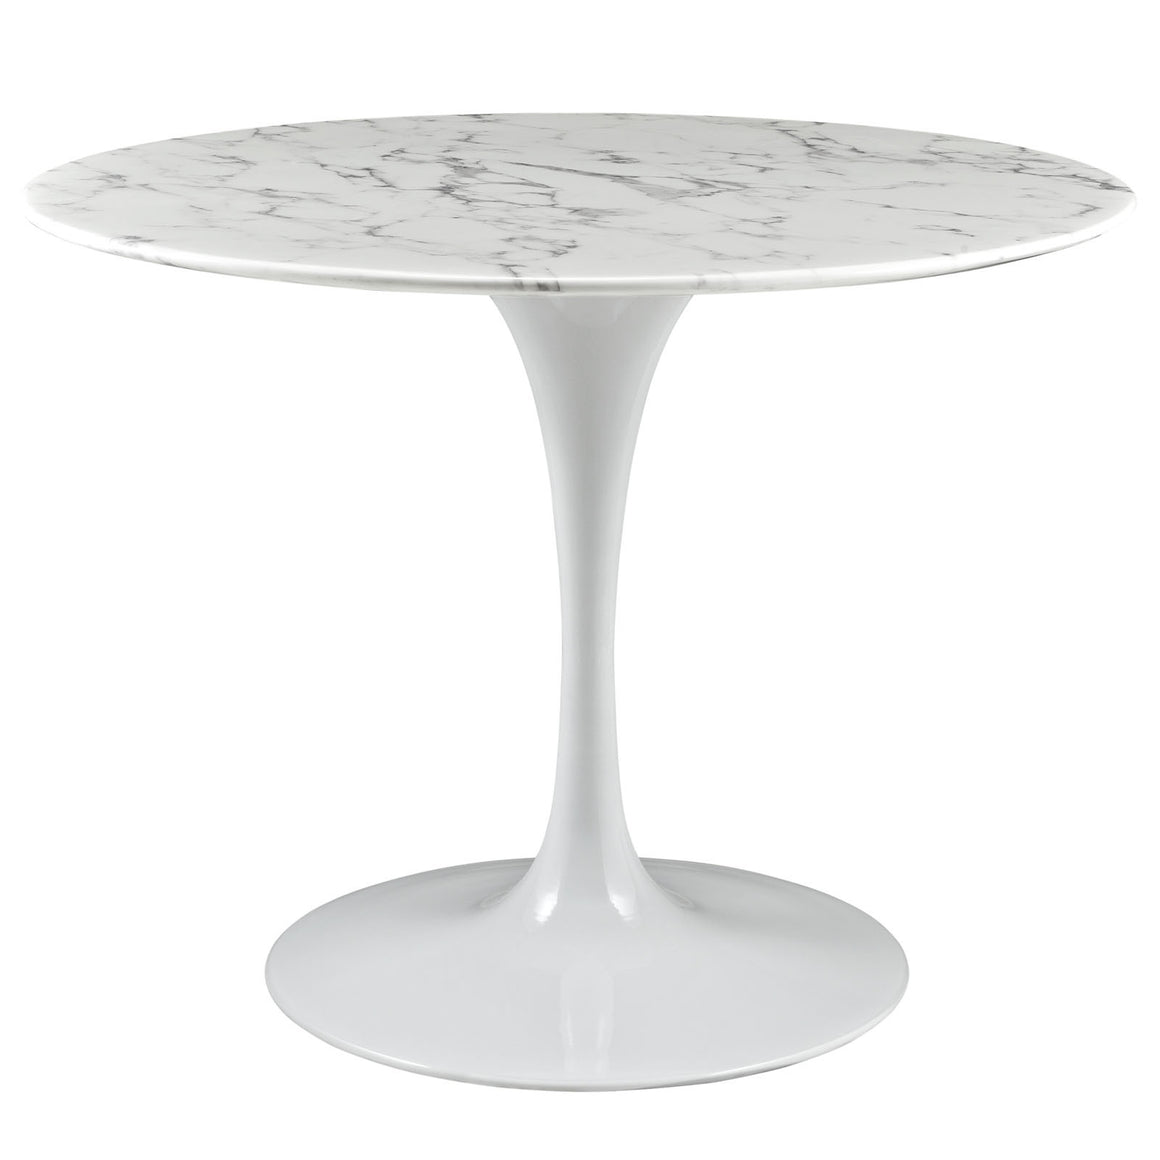 "Lippa 40"" Round Artificial Marble Top Dining Table"